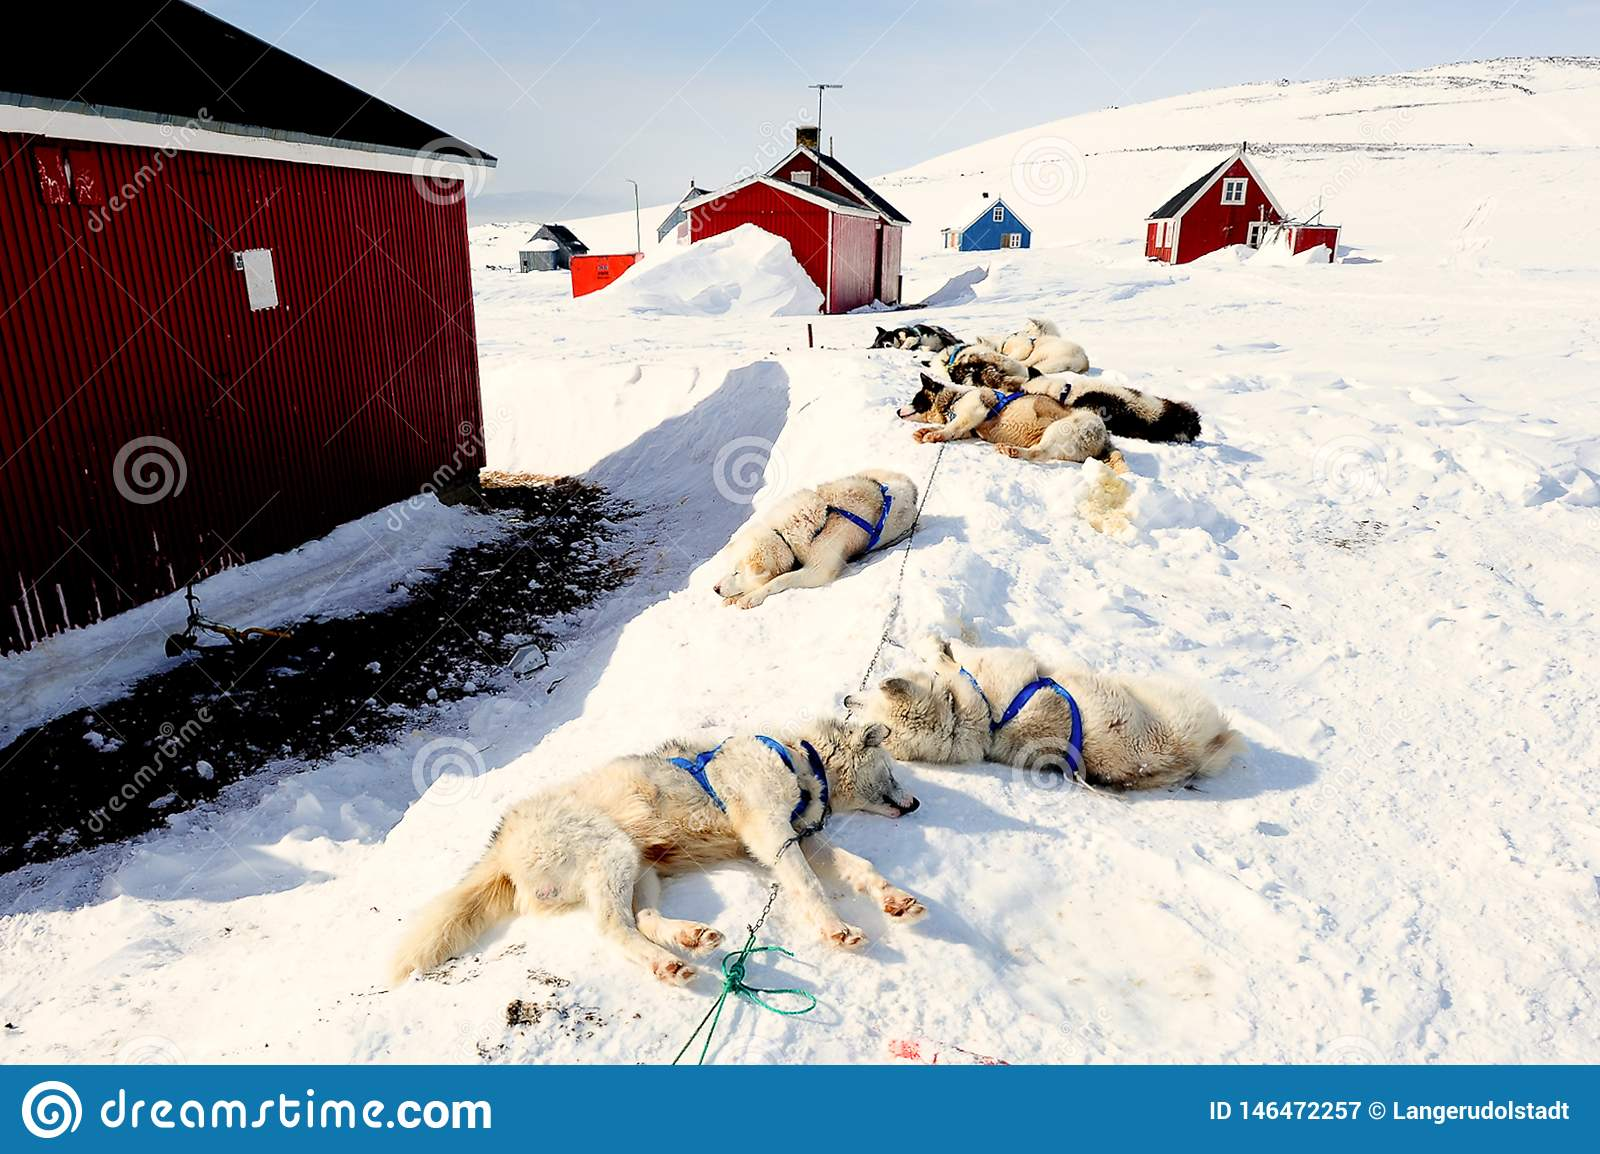 Exhausted sledge dogs in East Greenland after a long sledge dog ride